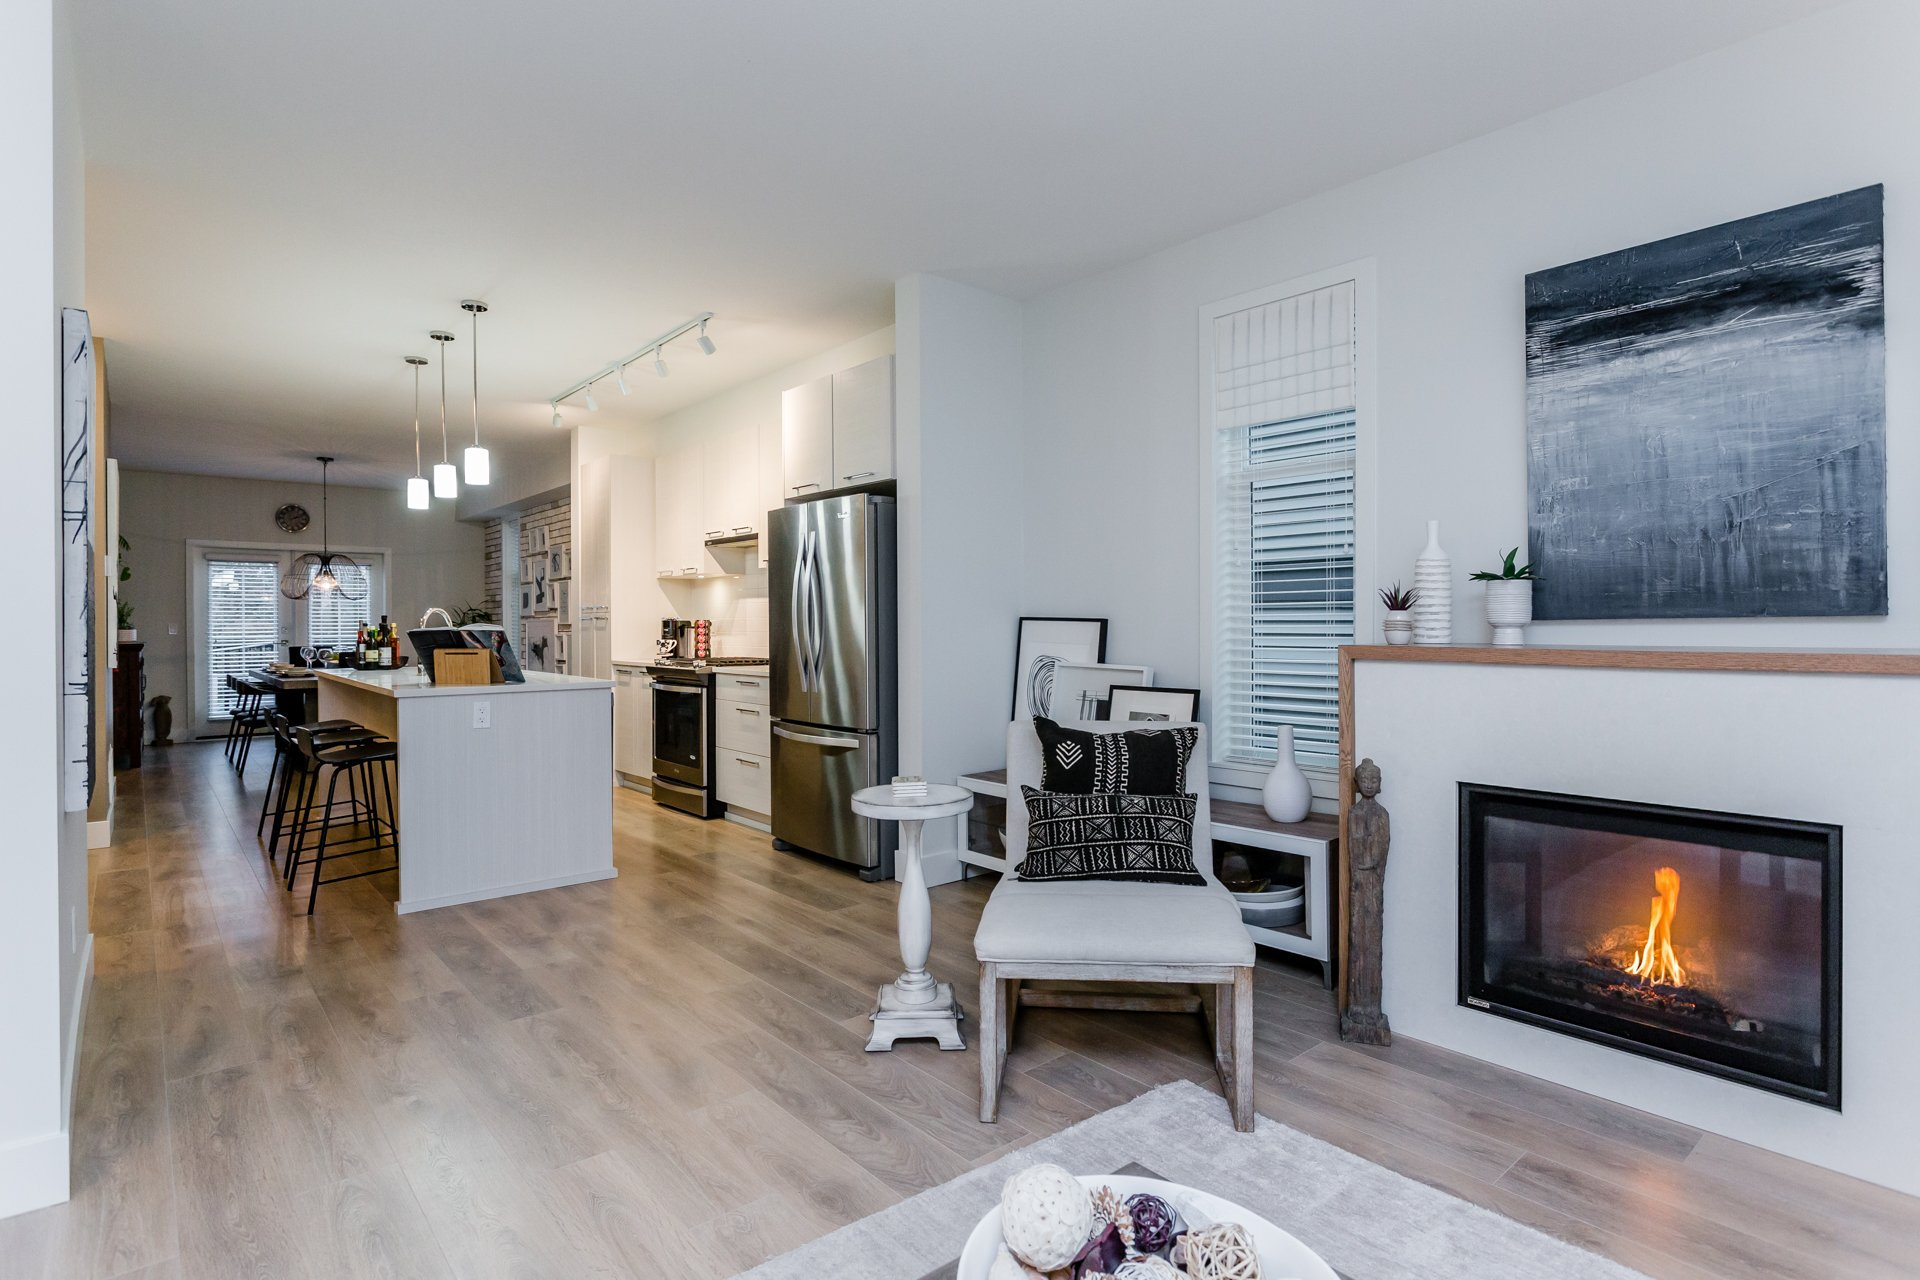 """Photo 20: Photos: 8 8217 204B Street in Langley: Willoughby Heights Townhouse for sale in """"EVERLY GREEN"""" : MLS®# R2236678"""